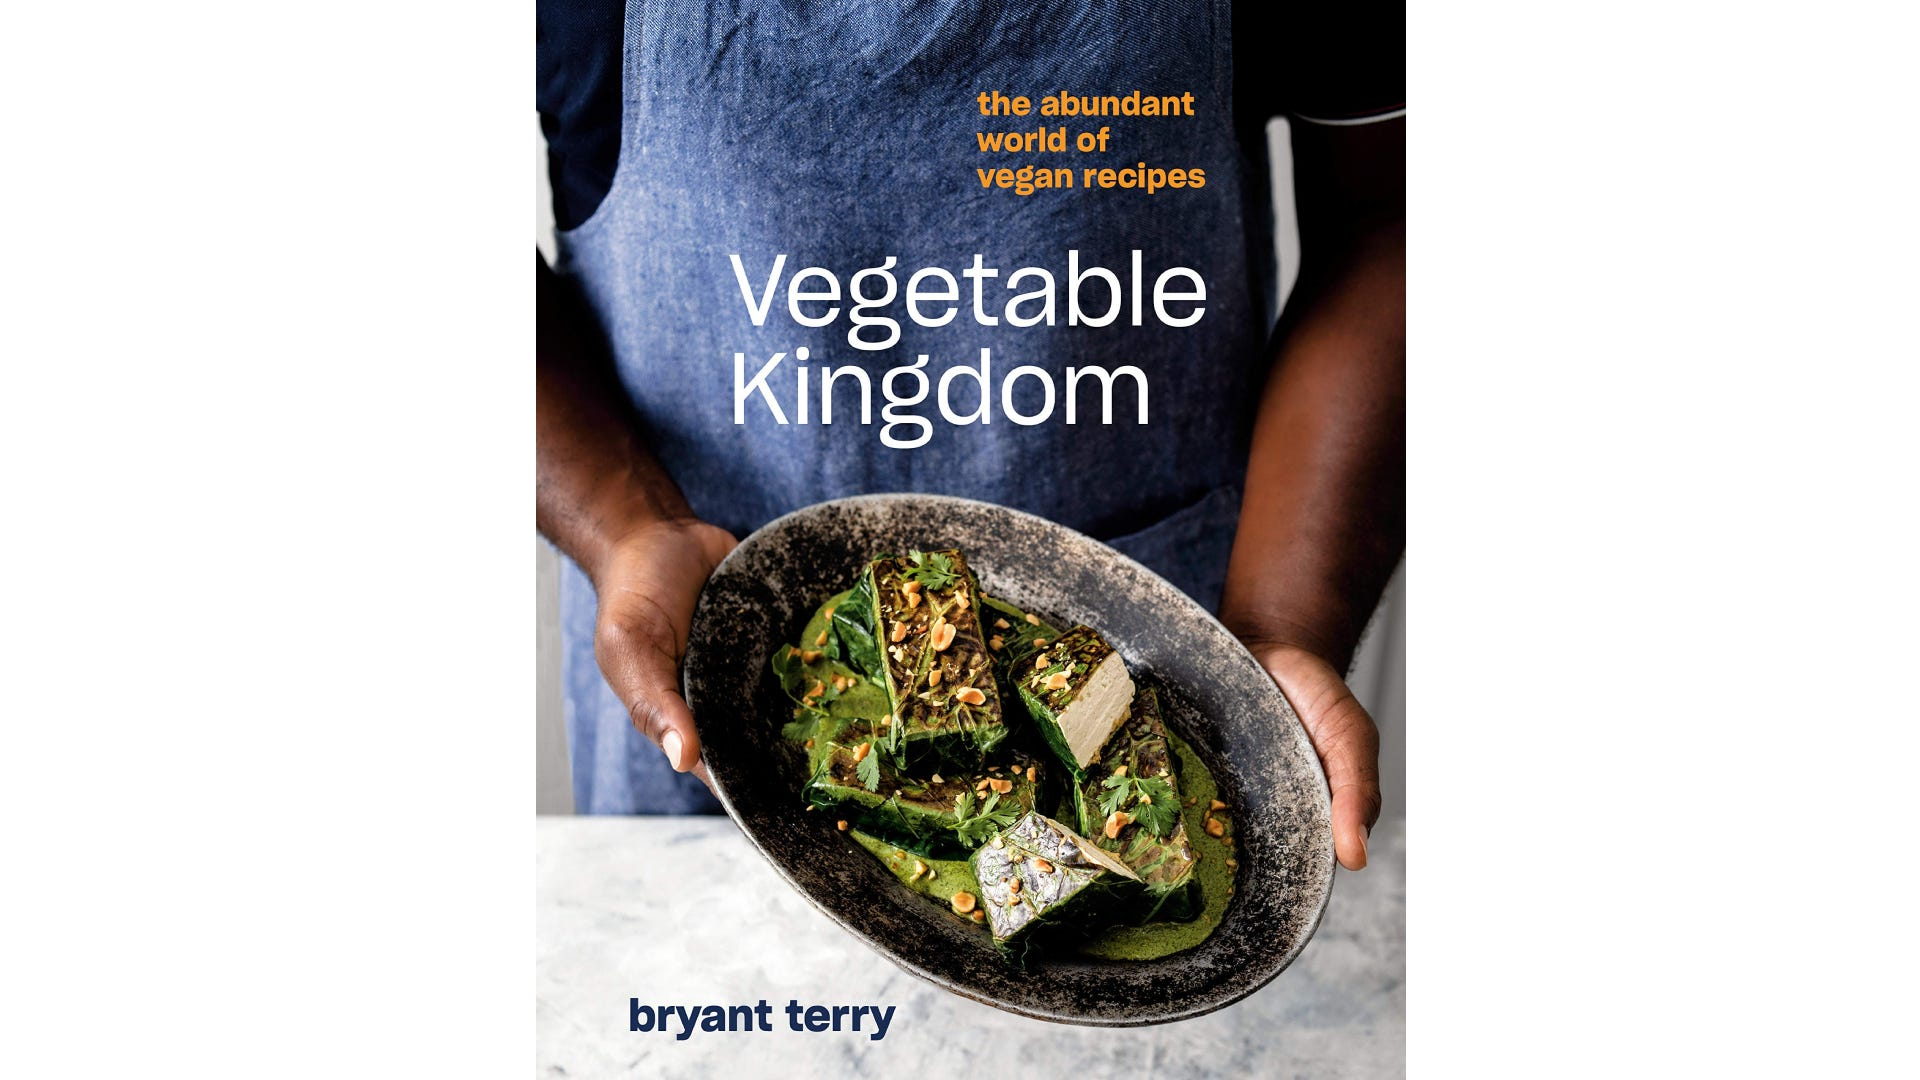 A book cover with a man in a blue apron holding a plate of food.